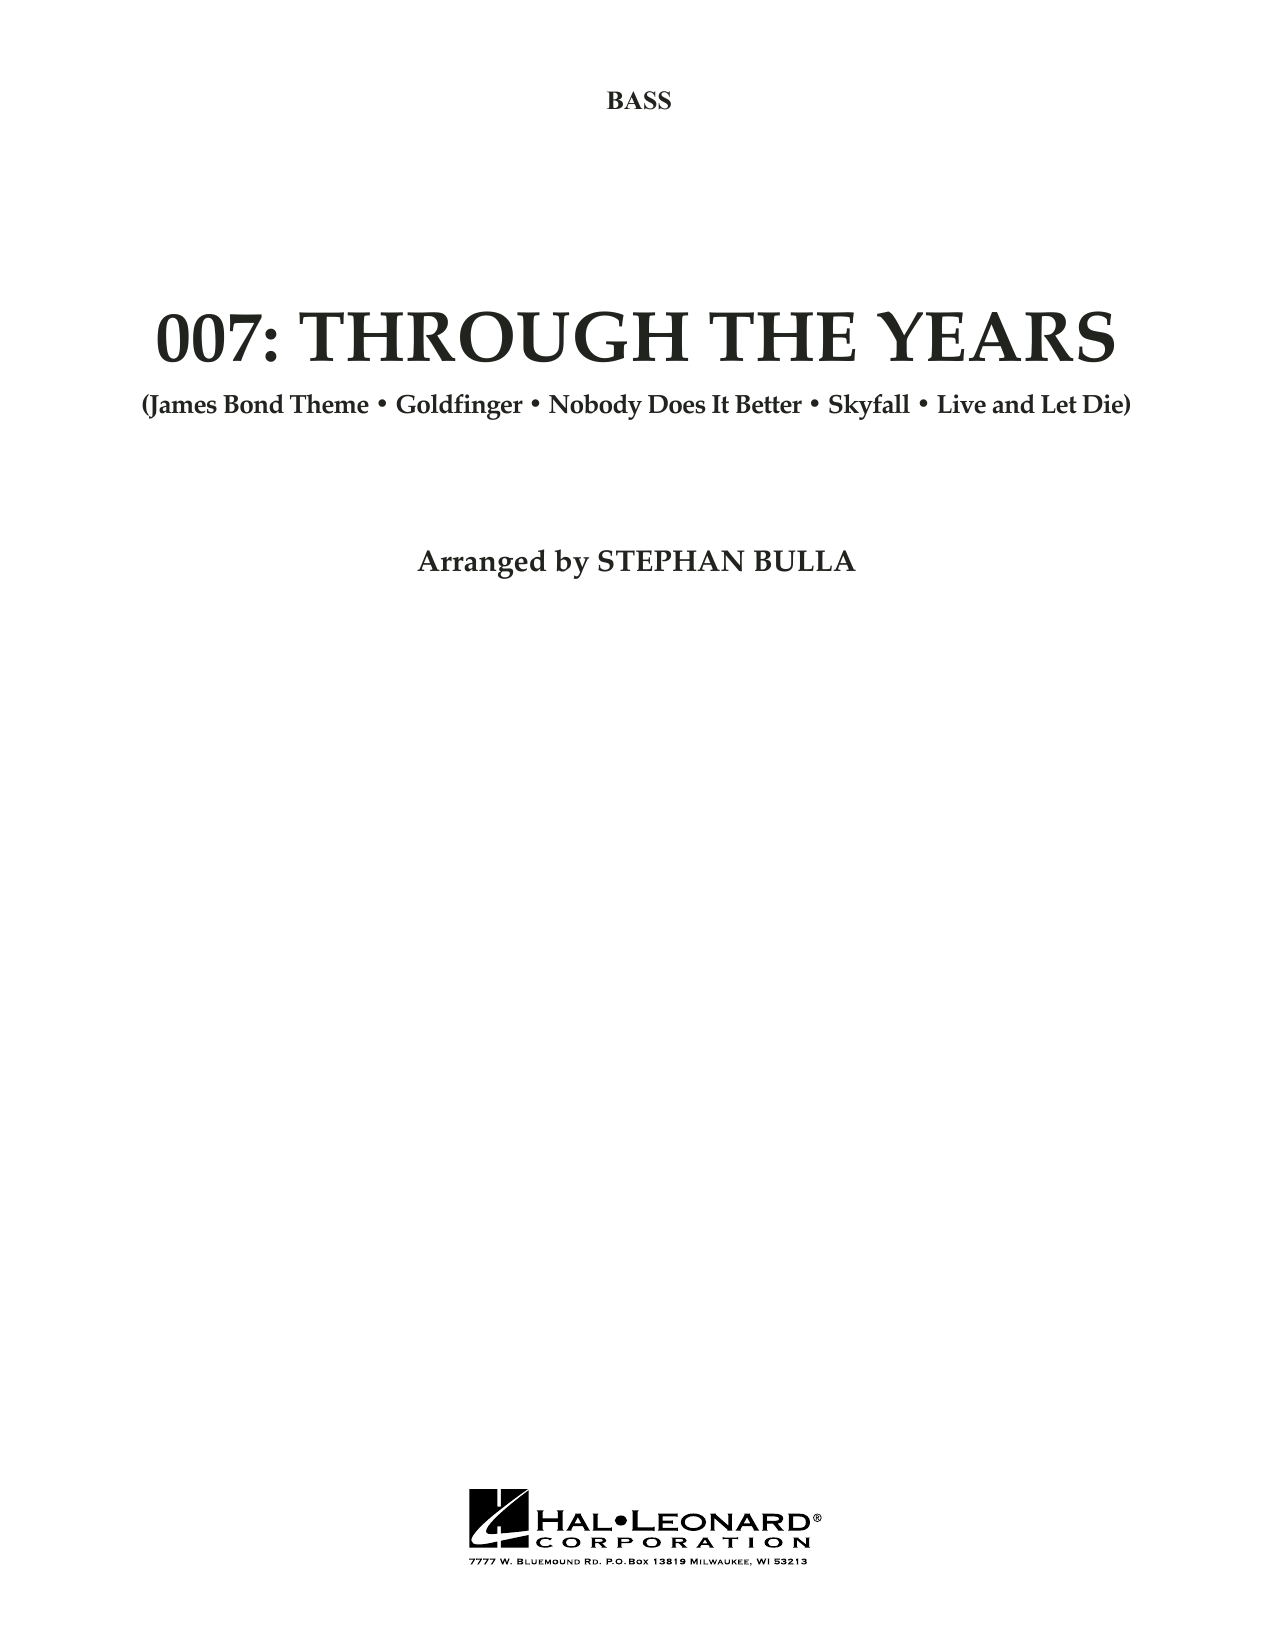 Stephen Bulla 007: Through The Years - String Bass sheet music preview music notes and score for Orchestra including 4 page(s)